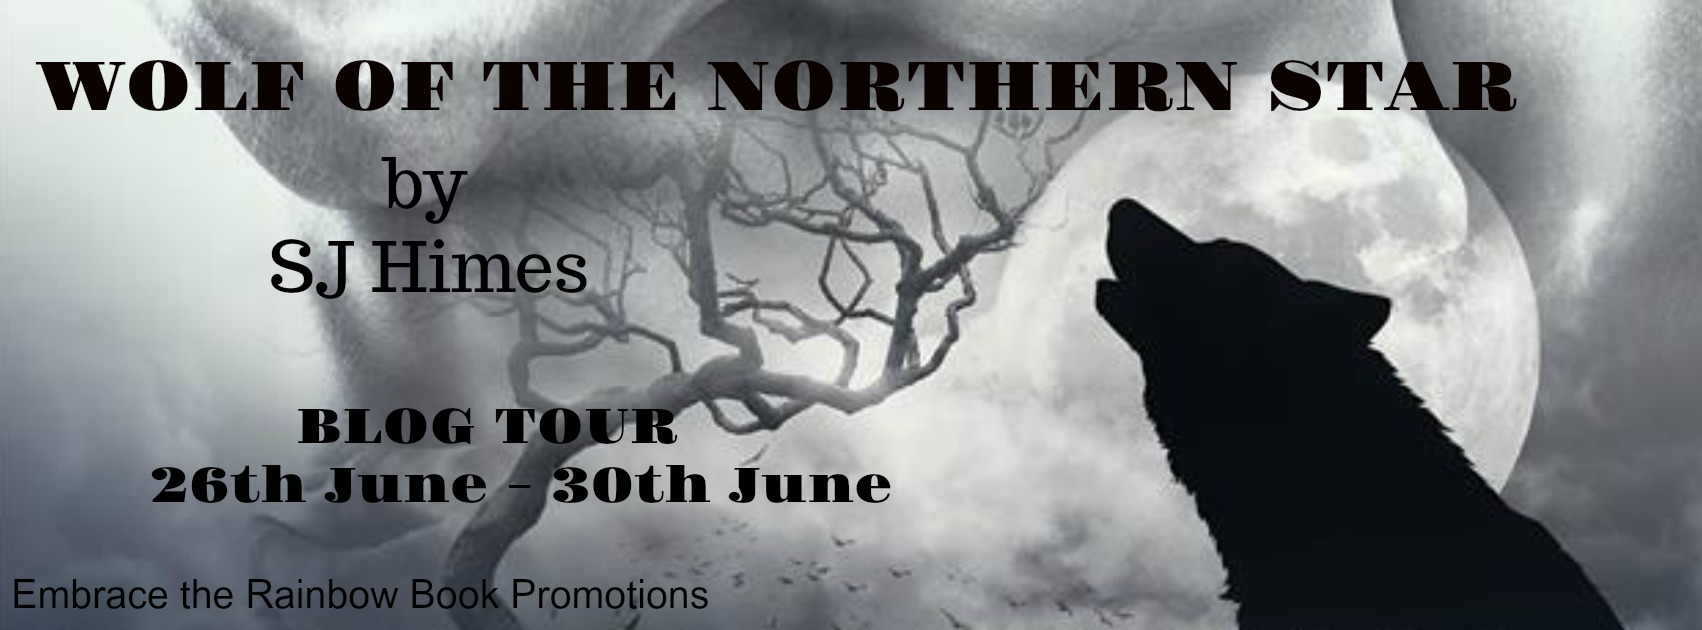 Blog Tour: Guestpost, Excerpt & Giveaway  SJ Himes - Wolf of the Nothern Star